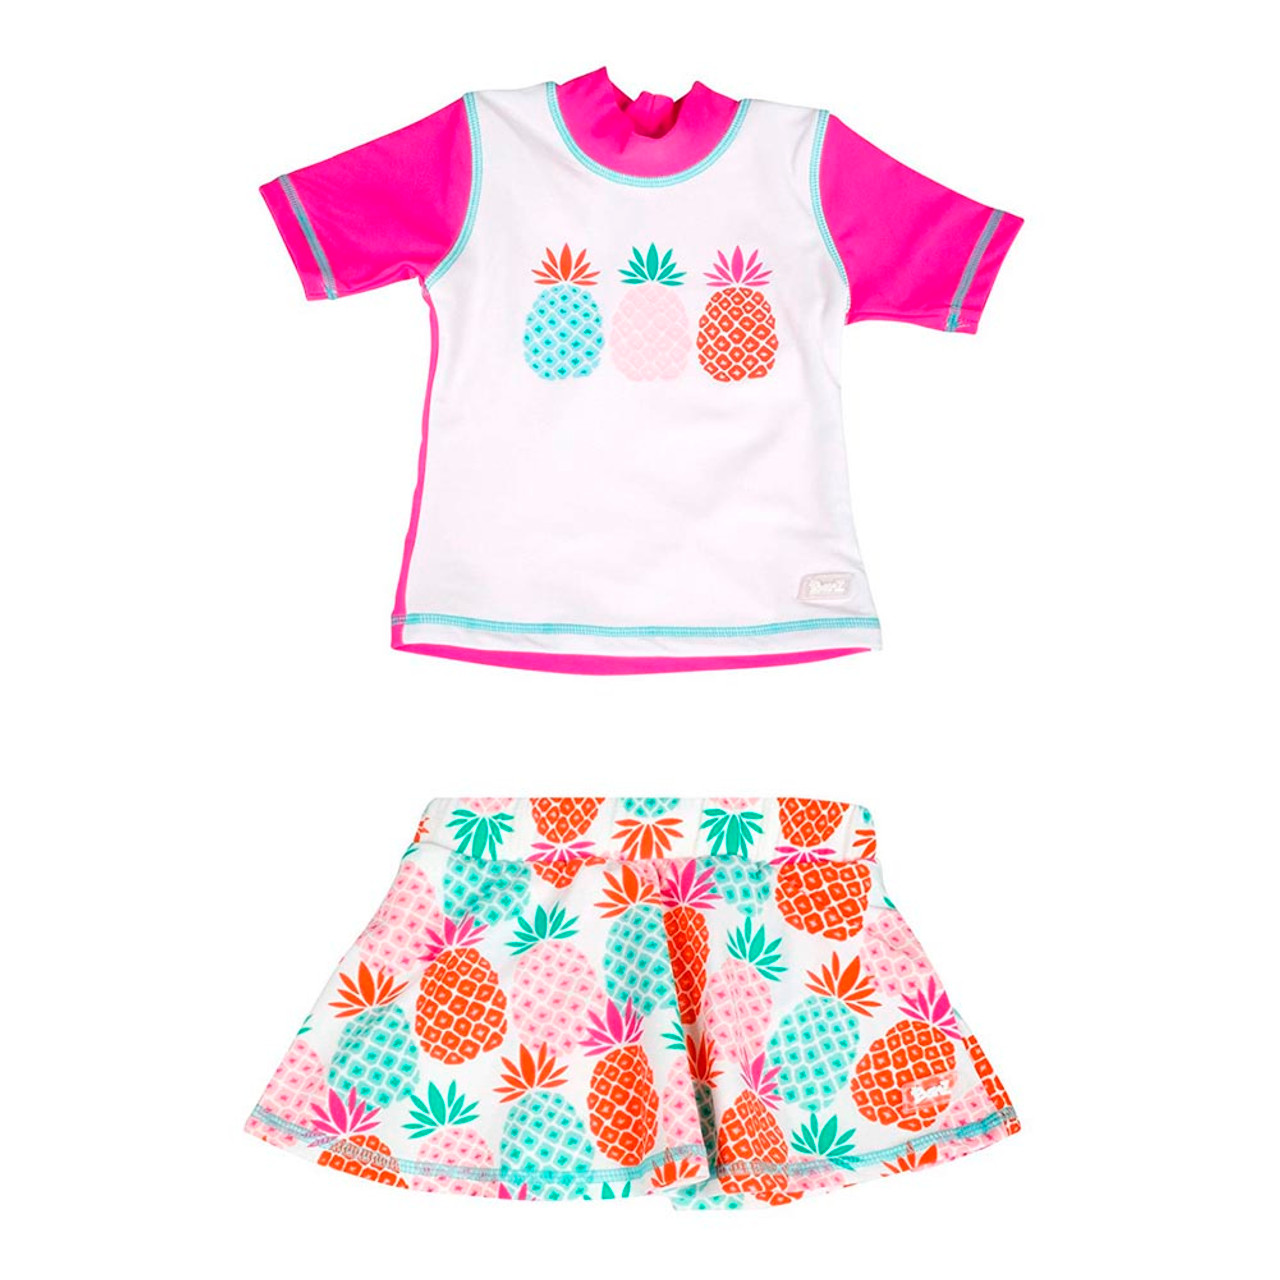 a1c8efb662 Baby Banz Short Sleeved Two-Piece Girls Swimsuit - Pineapple (Size 2 ...